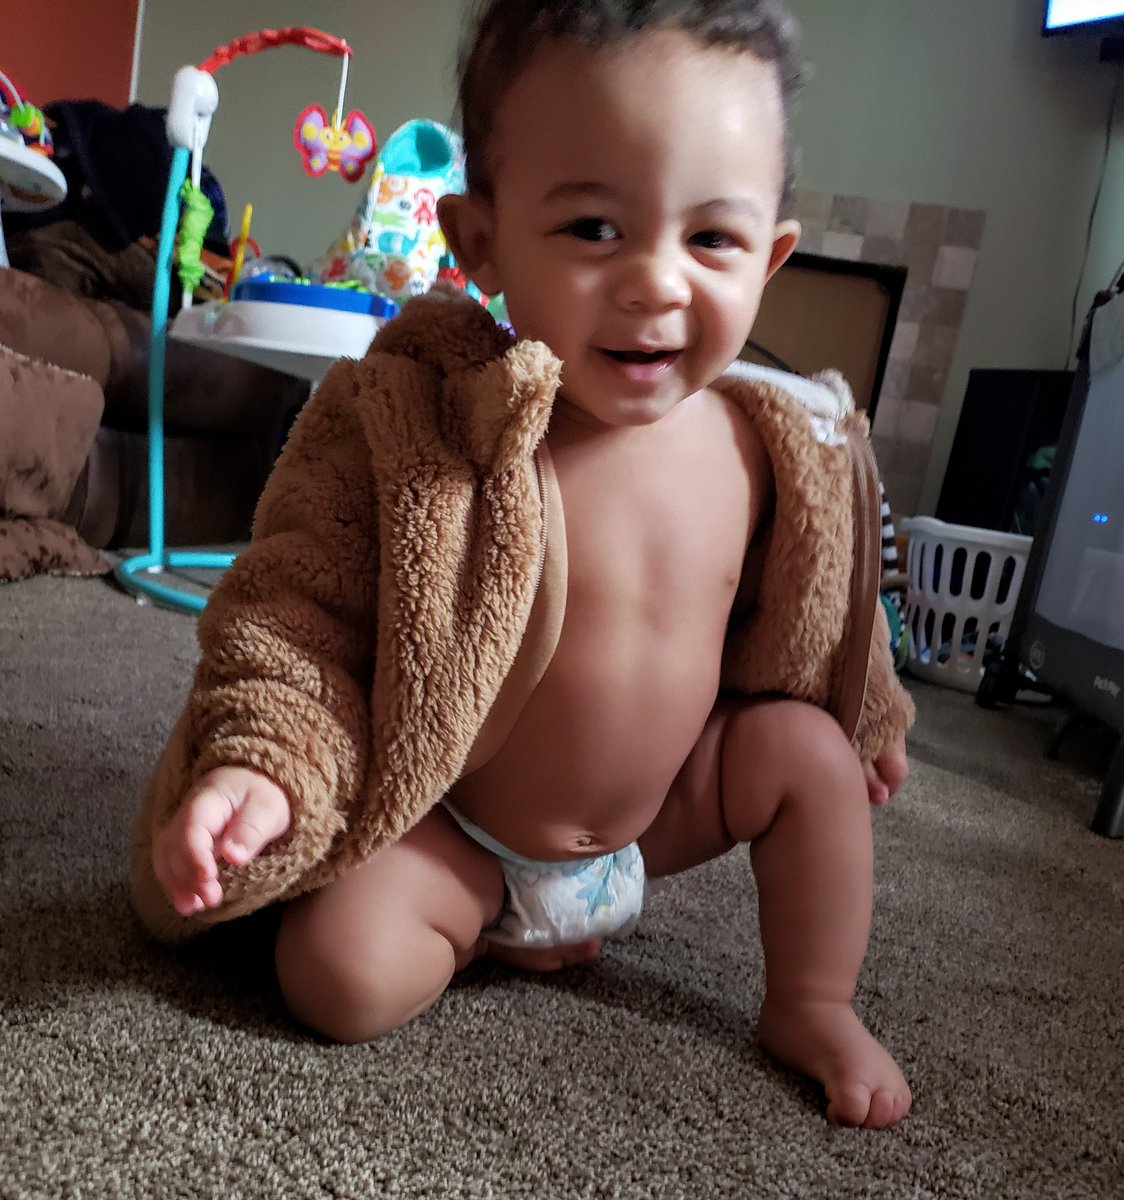 @chrissyteigen @johnlegend my mother pointed out to me that my son looks like John. What do you think?!pic.twitter.com/o5bjzHVs2Y